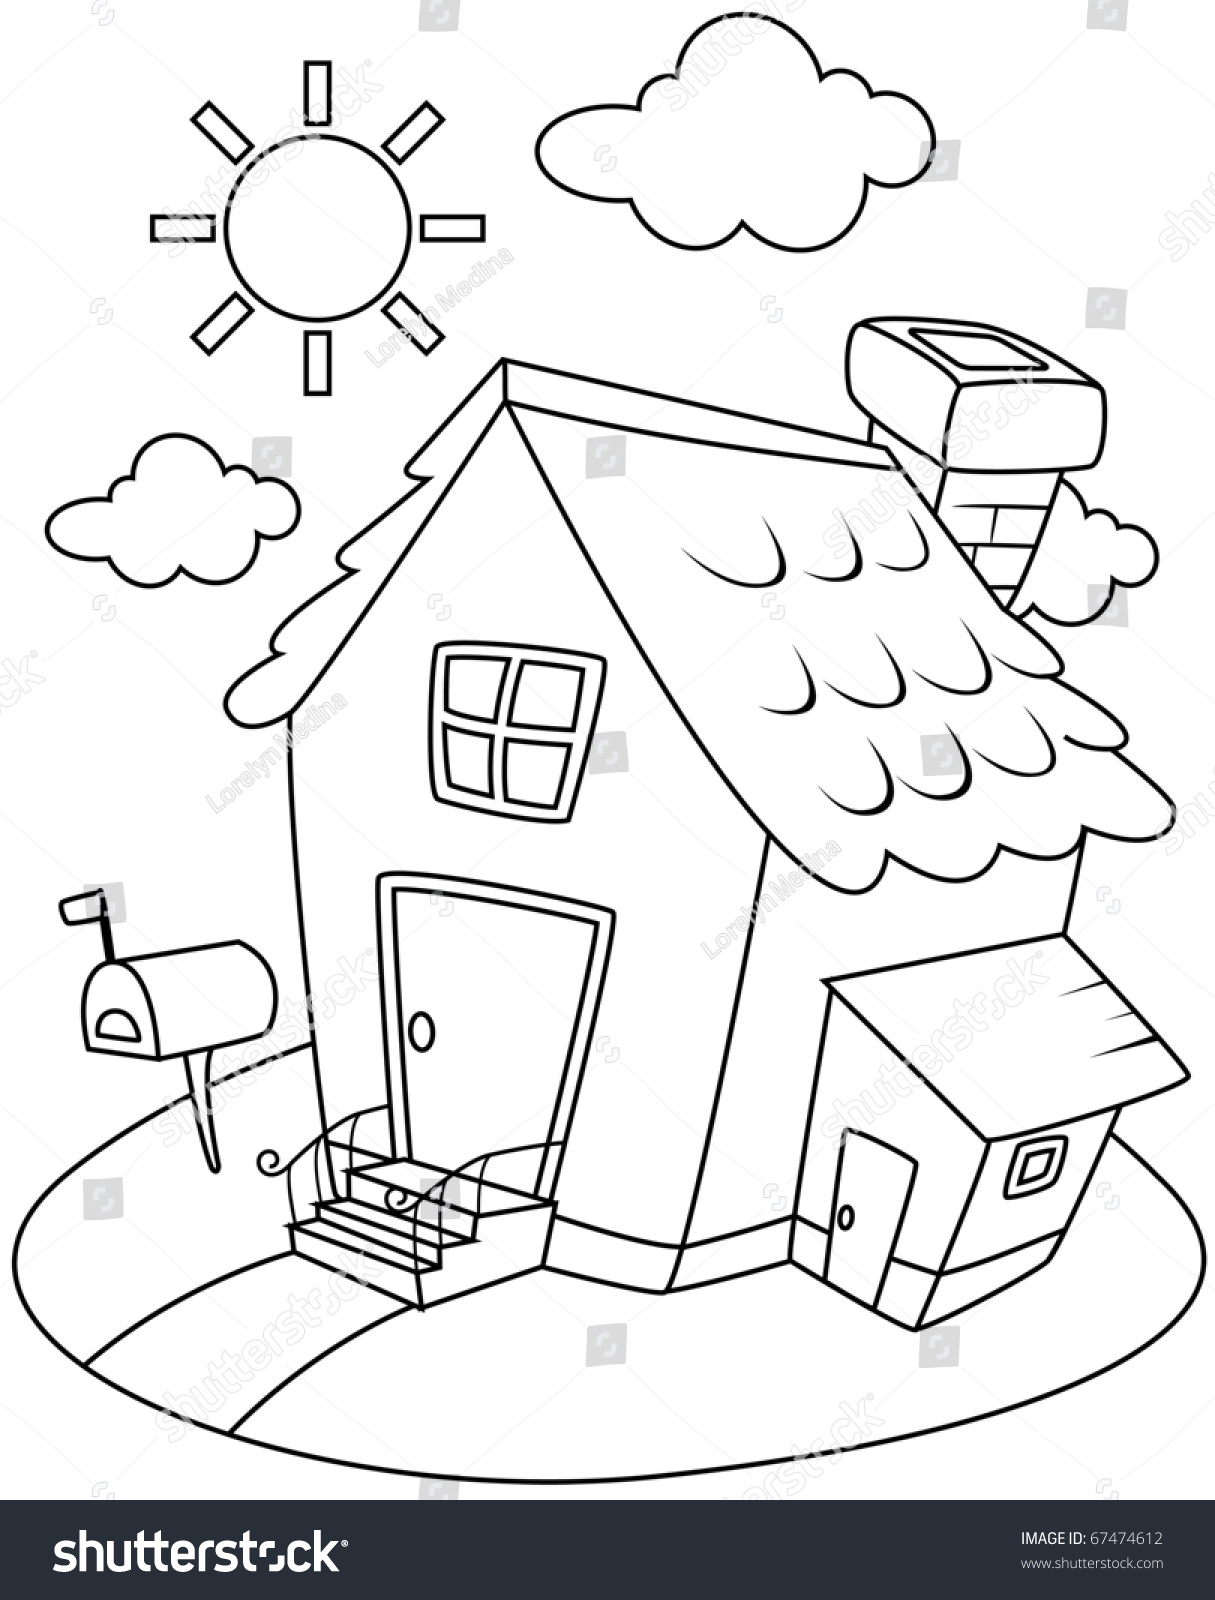 Line Art Illustration Of A Small House Complete With Sunny Backdrop Coloring Page